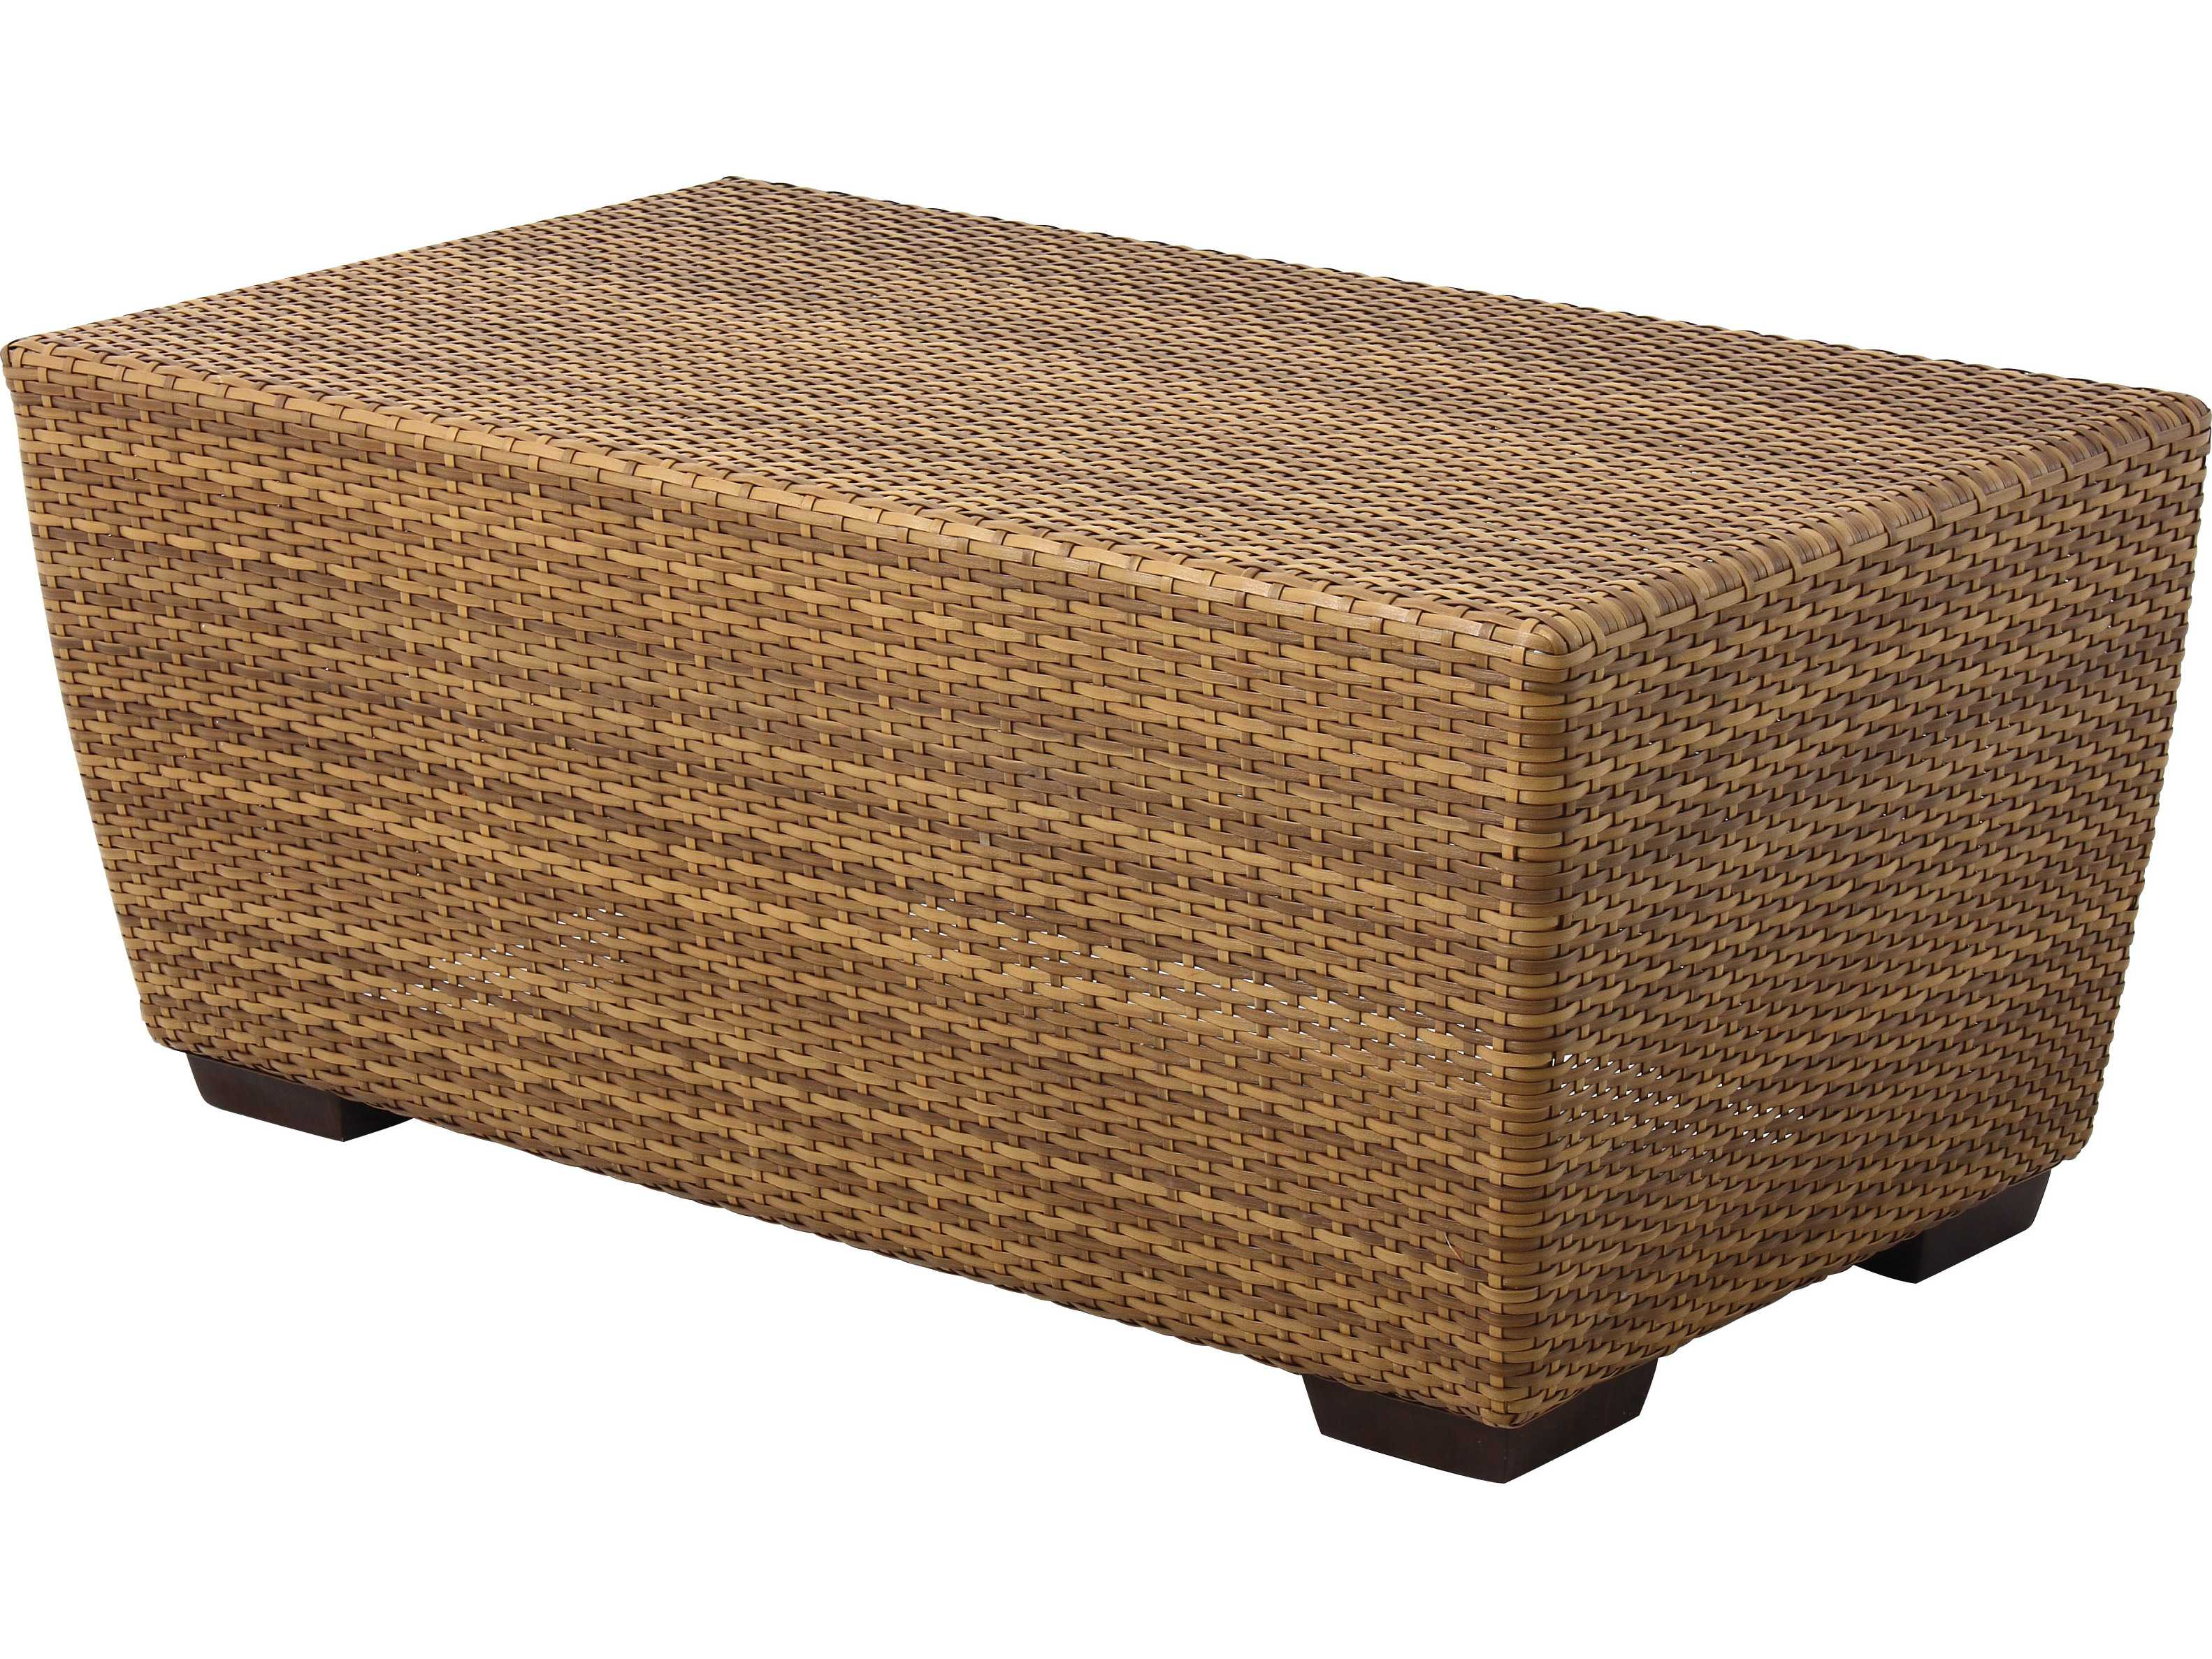 Whitecraft saddleback wicker rectangular 42 x 24 coffee table s523213 White wicker coffee table